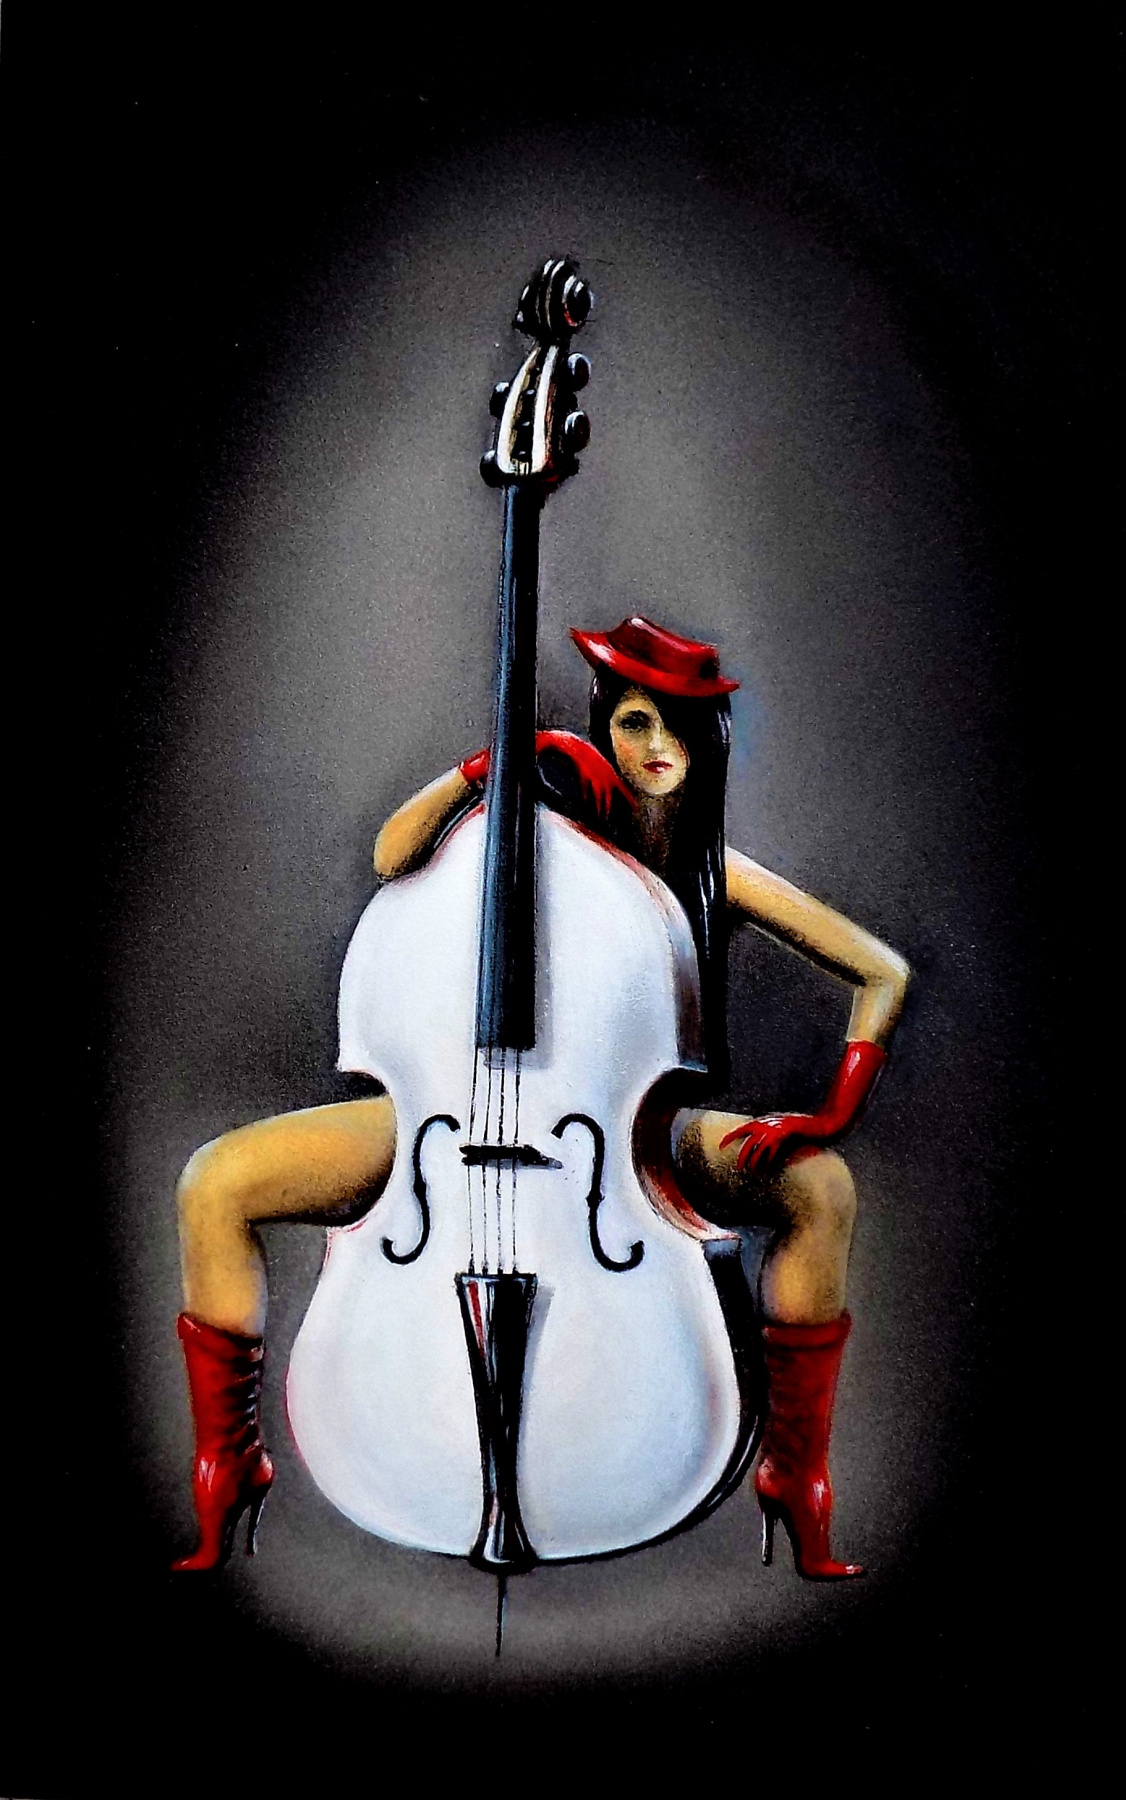 Alex Visiroff. White double bass